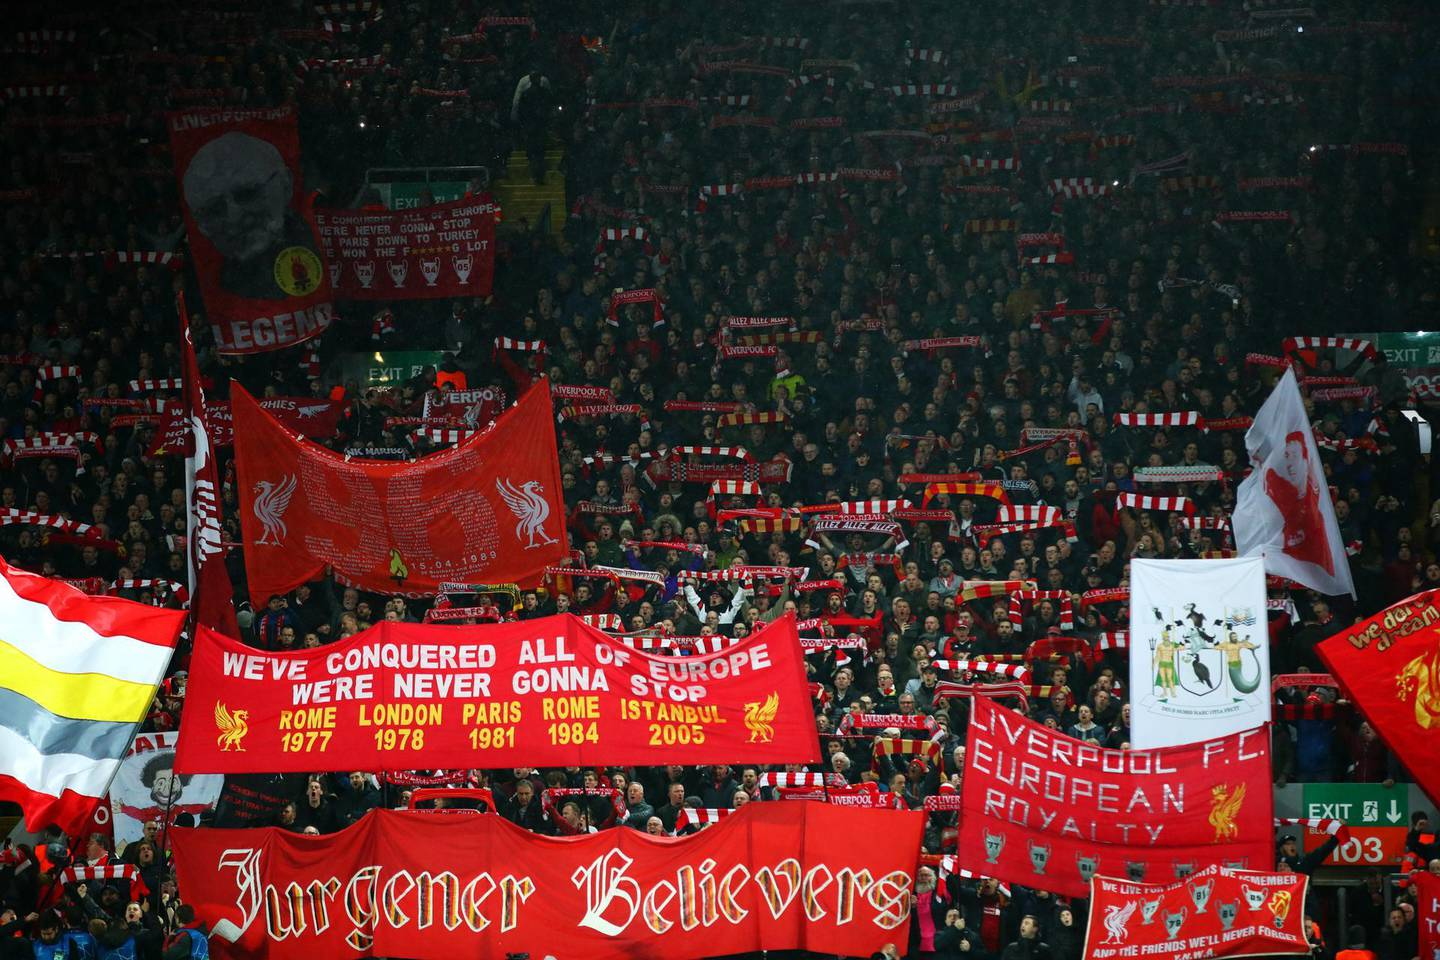 LIVERPOOL, ENGLAND - FEBRUARY 19:  Liverpool fans show their support prior to the UEFA Champions League Round of 16 First Leg match between Liverpool and FC Bayern Muenchen at Anfield on February 19, 2019 in Liverpool, England. (Photo by Clive Brunskill/Getty Images)